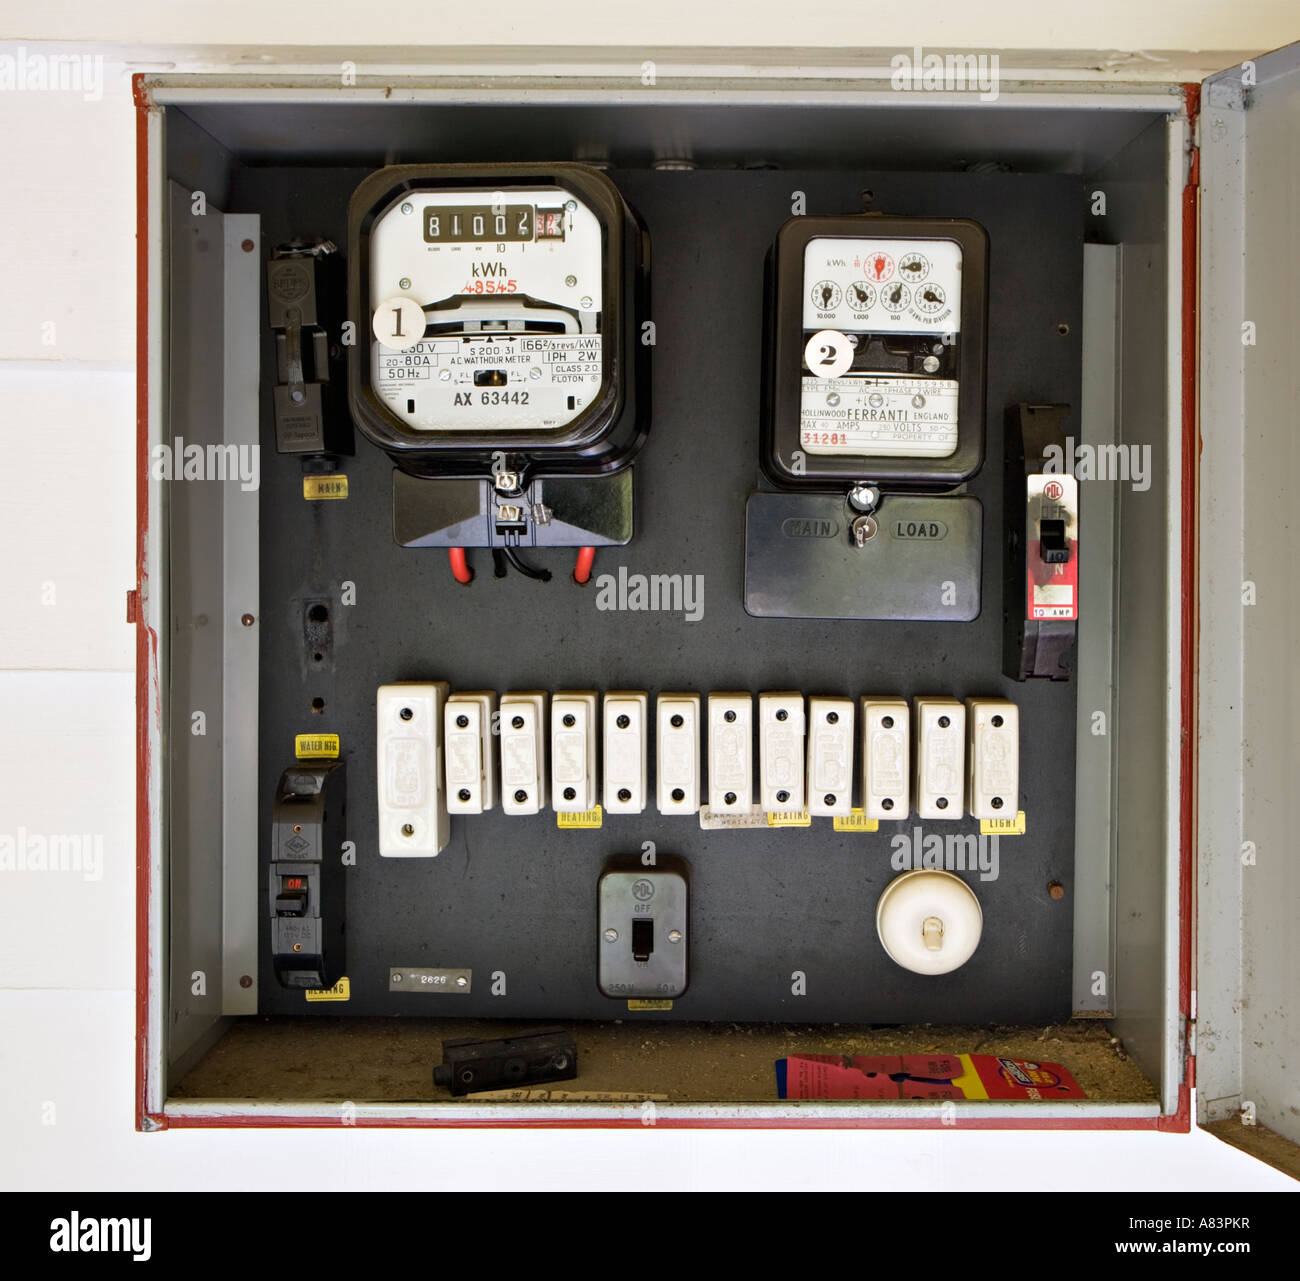 Electric Meter Box Wiring Diagram: Electricity meter in box with old style fuses circa 1962 in New ,Design